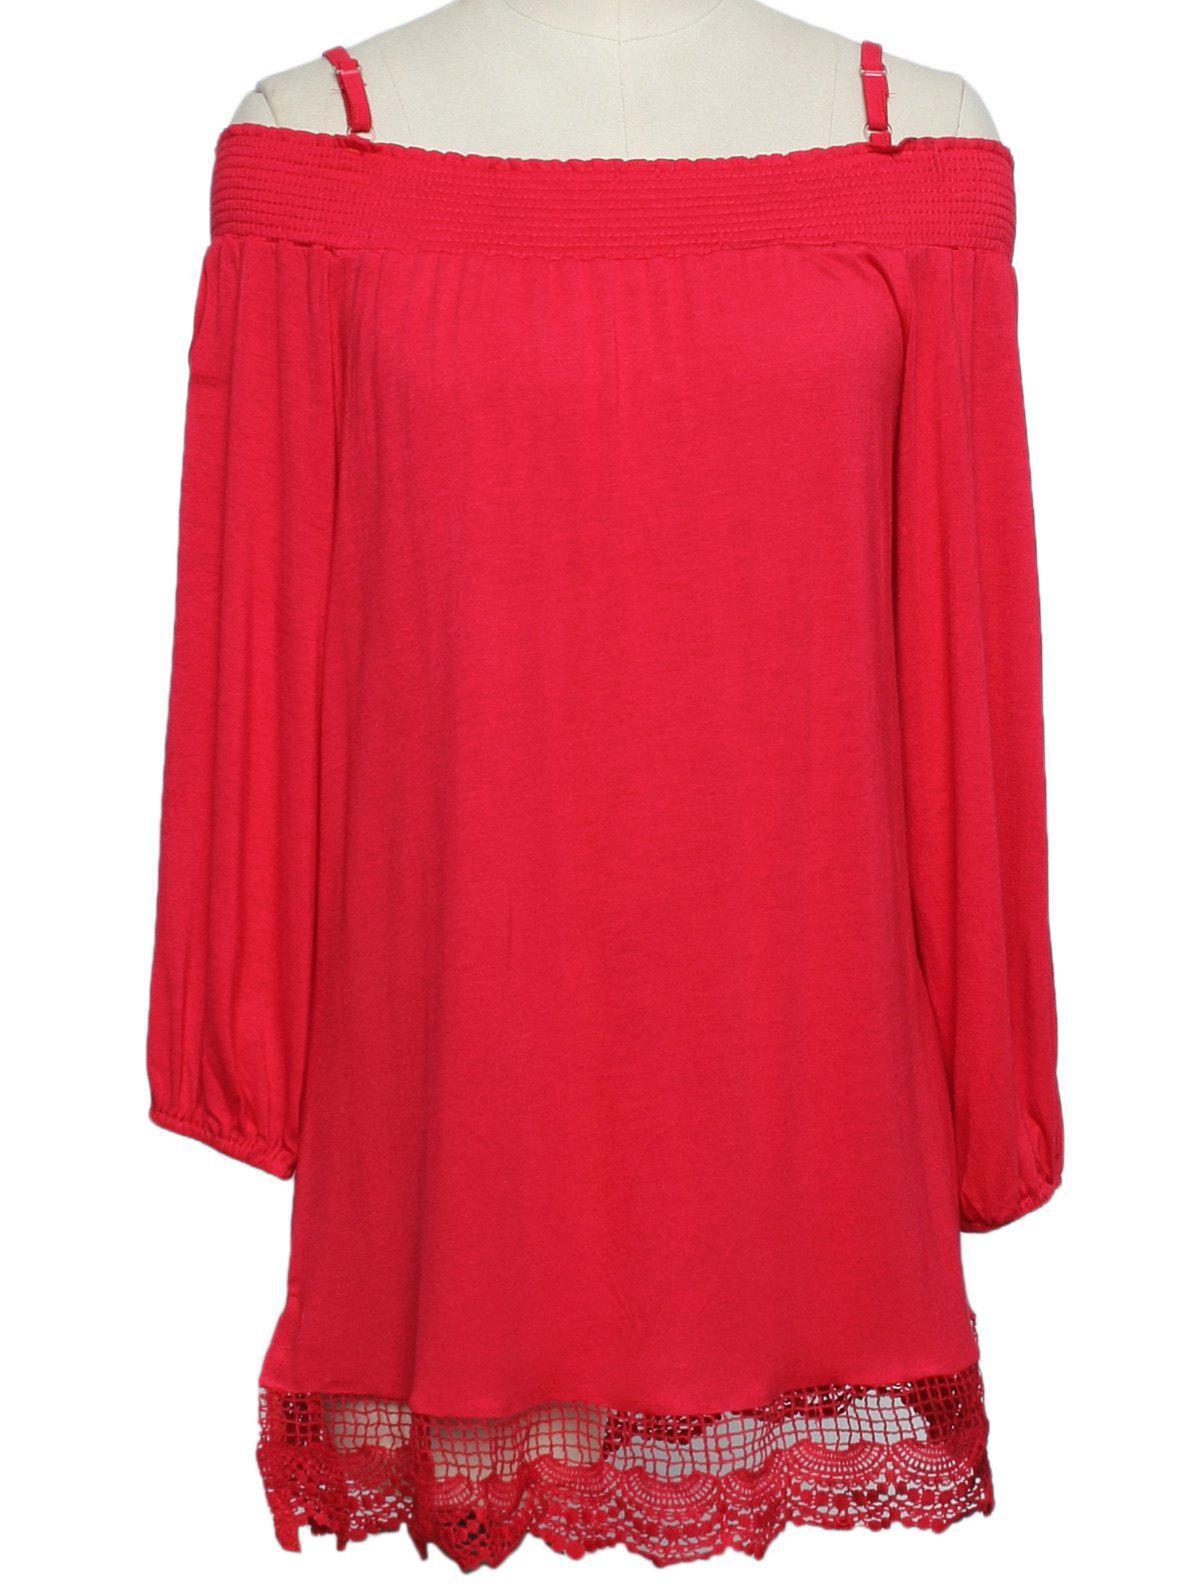 Sweet Lace Spliced Spaghetti Strap 3/4 Sleeve Women's Blouse - RED XL